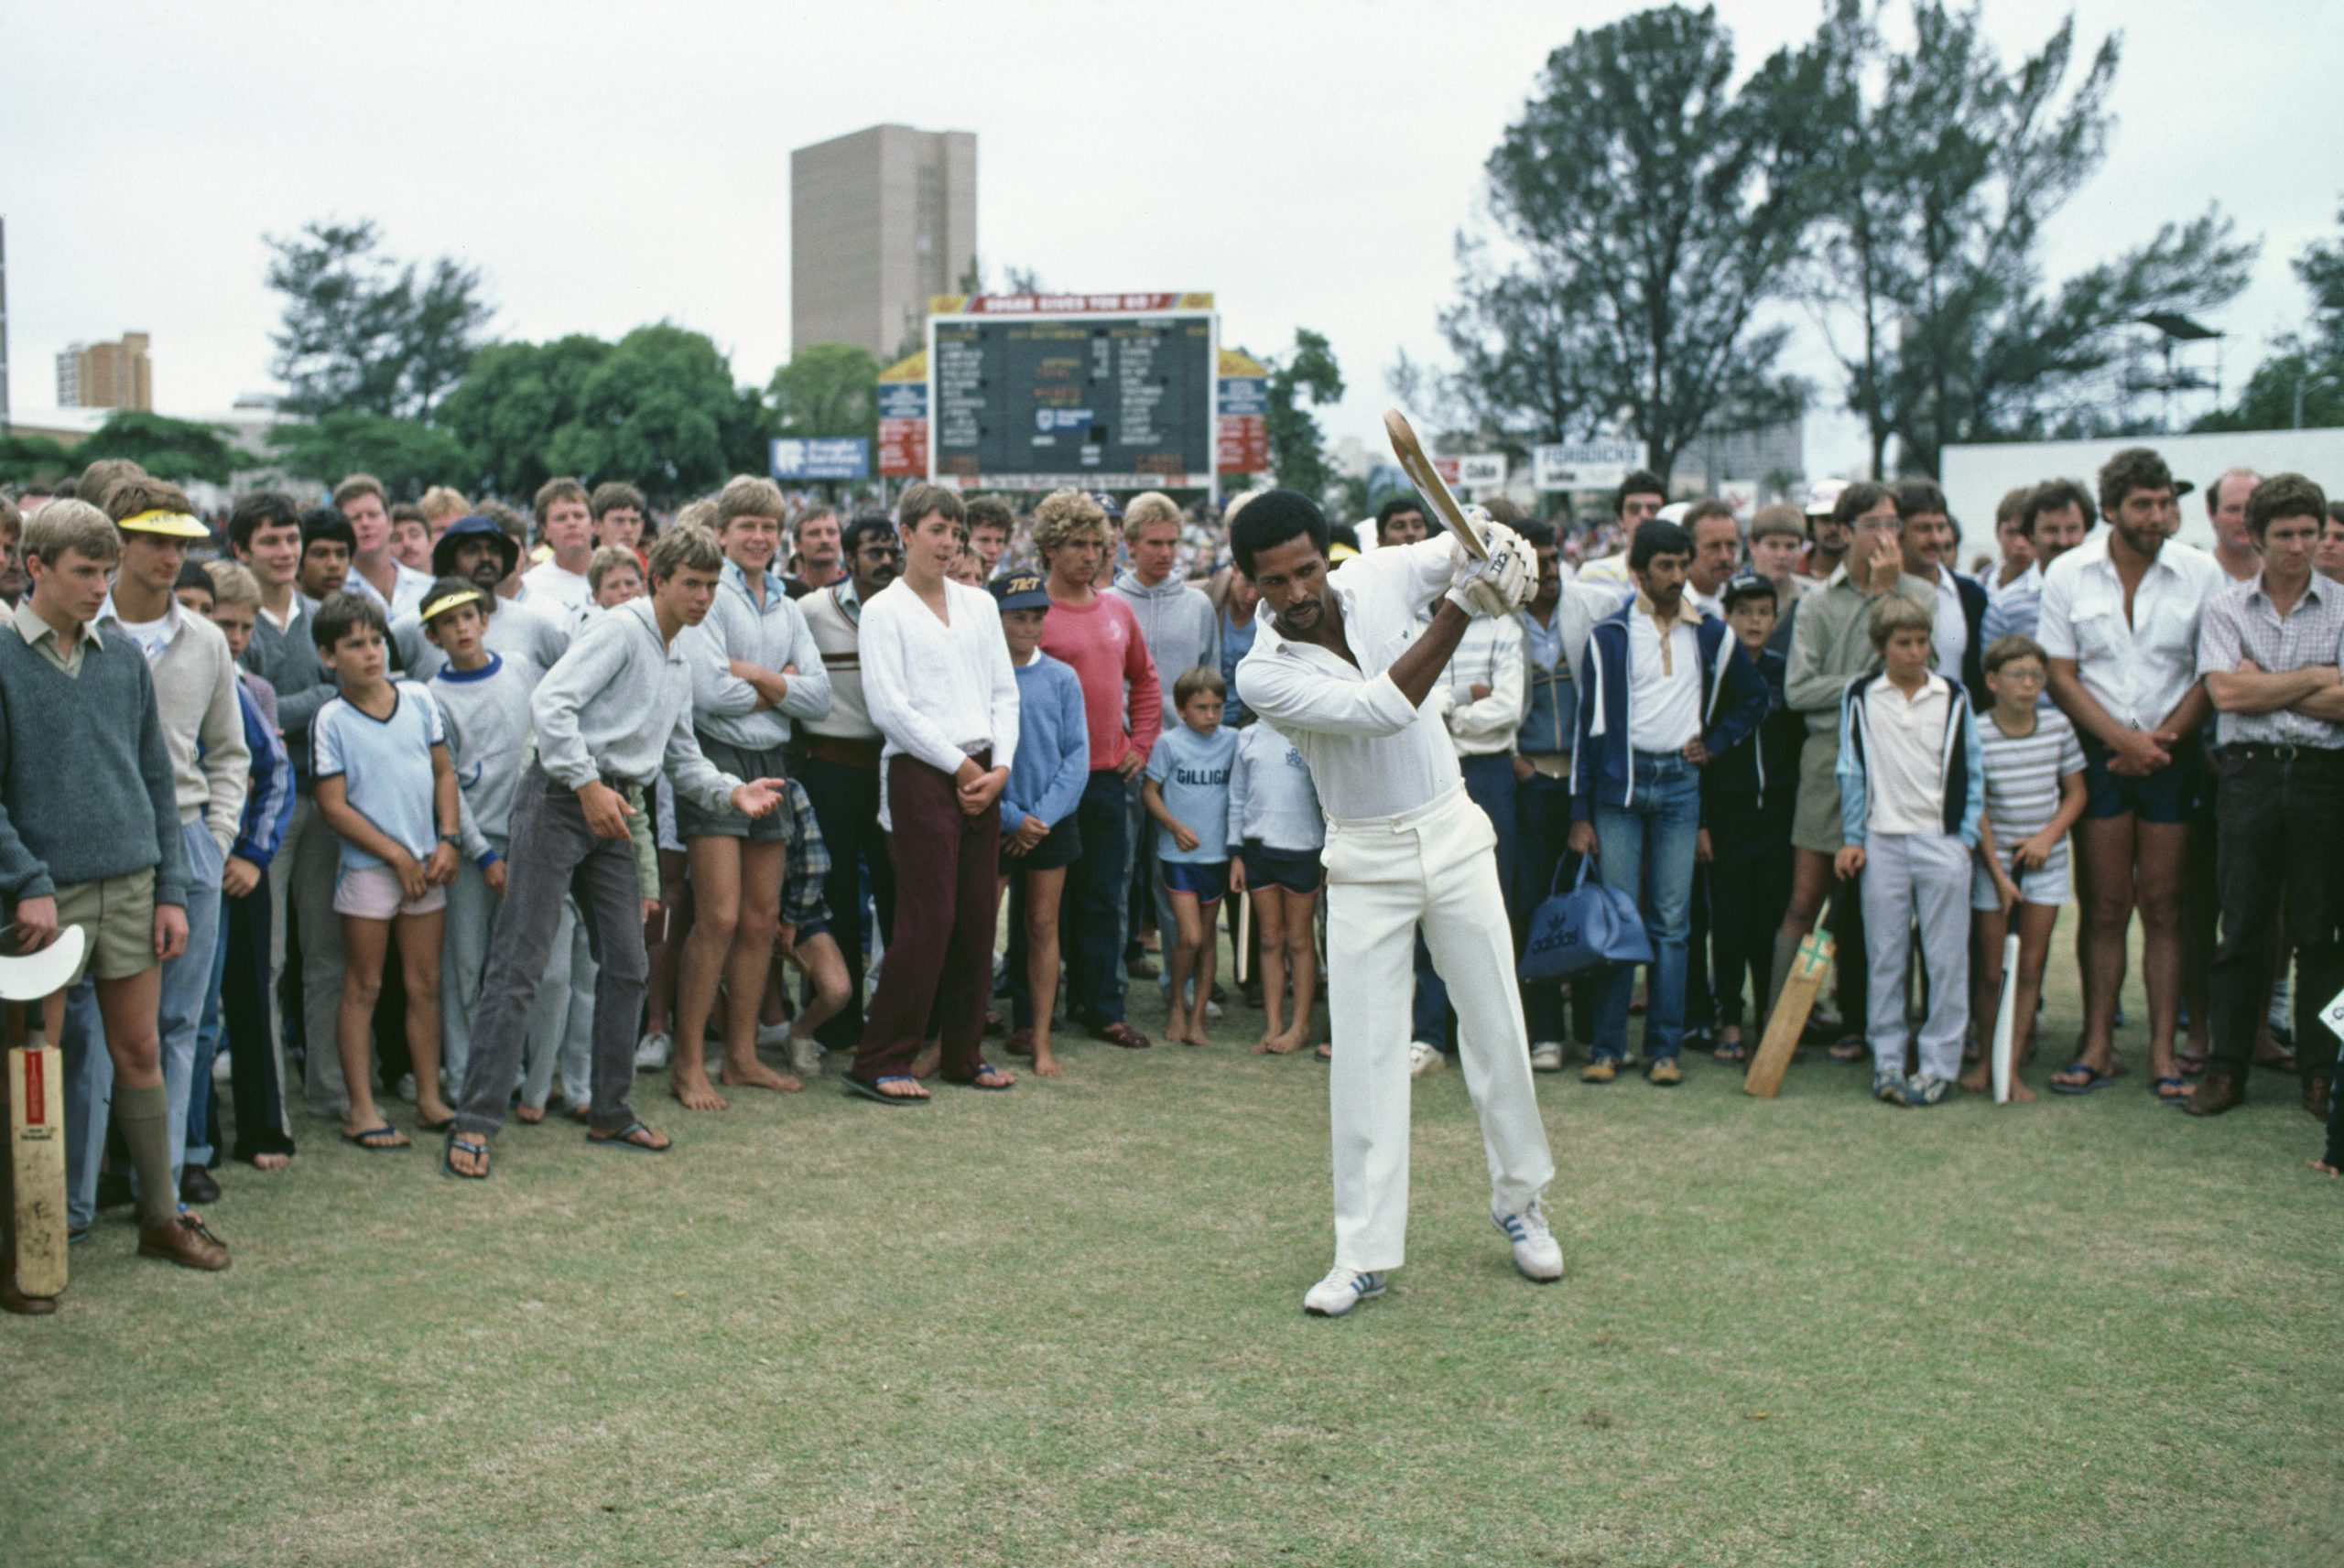 February 1983: Bernard Julien of the rebel West Indies XI in Durban for a one-day international during the team's tour of South Africa, despite a ban on international sports owing to apartheid. The rebel tourists were handed lifetime bans from playing cricket for breaking the international sports boycott imposed on South Africa. (Photograph by Adrian Murrell/ Getty Images)